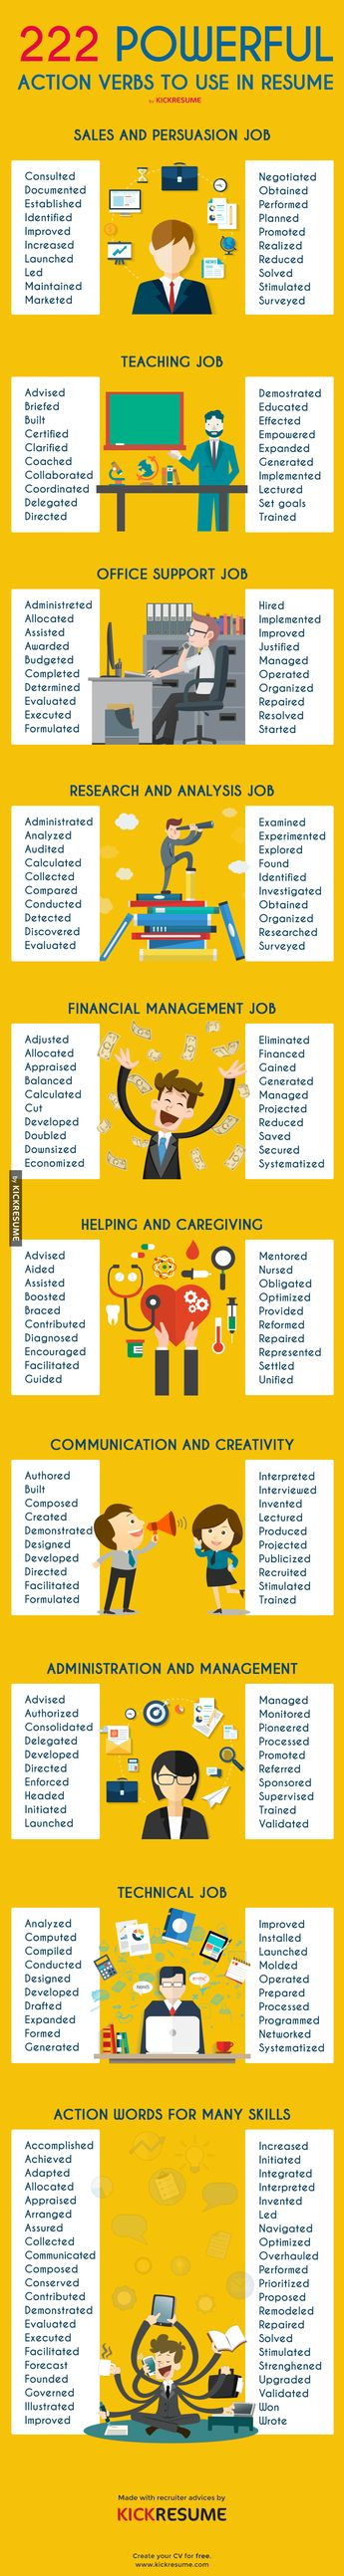 222 powerful actions verbs to use in resume